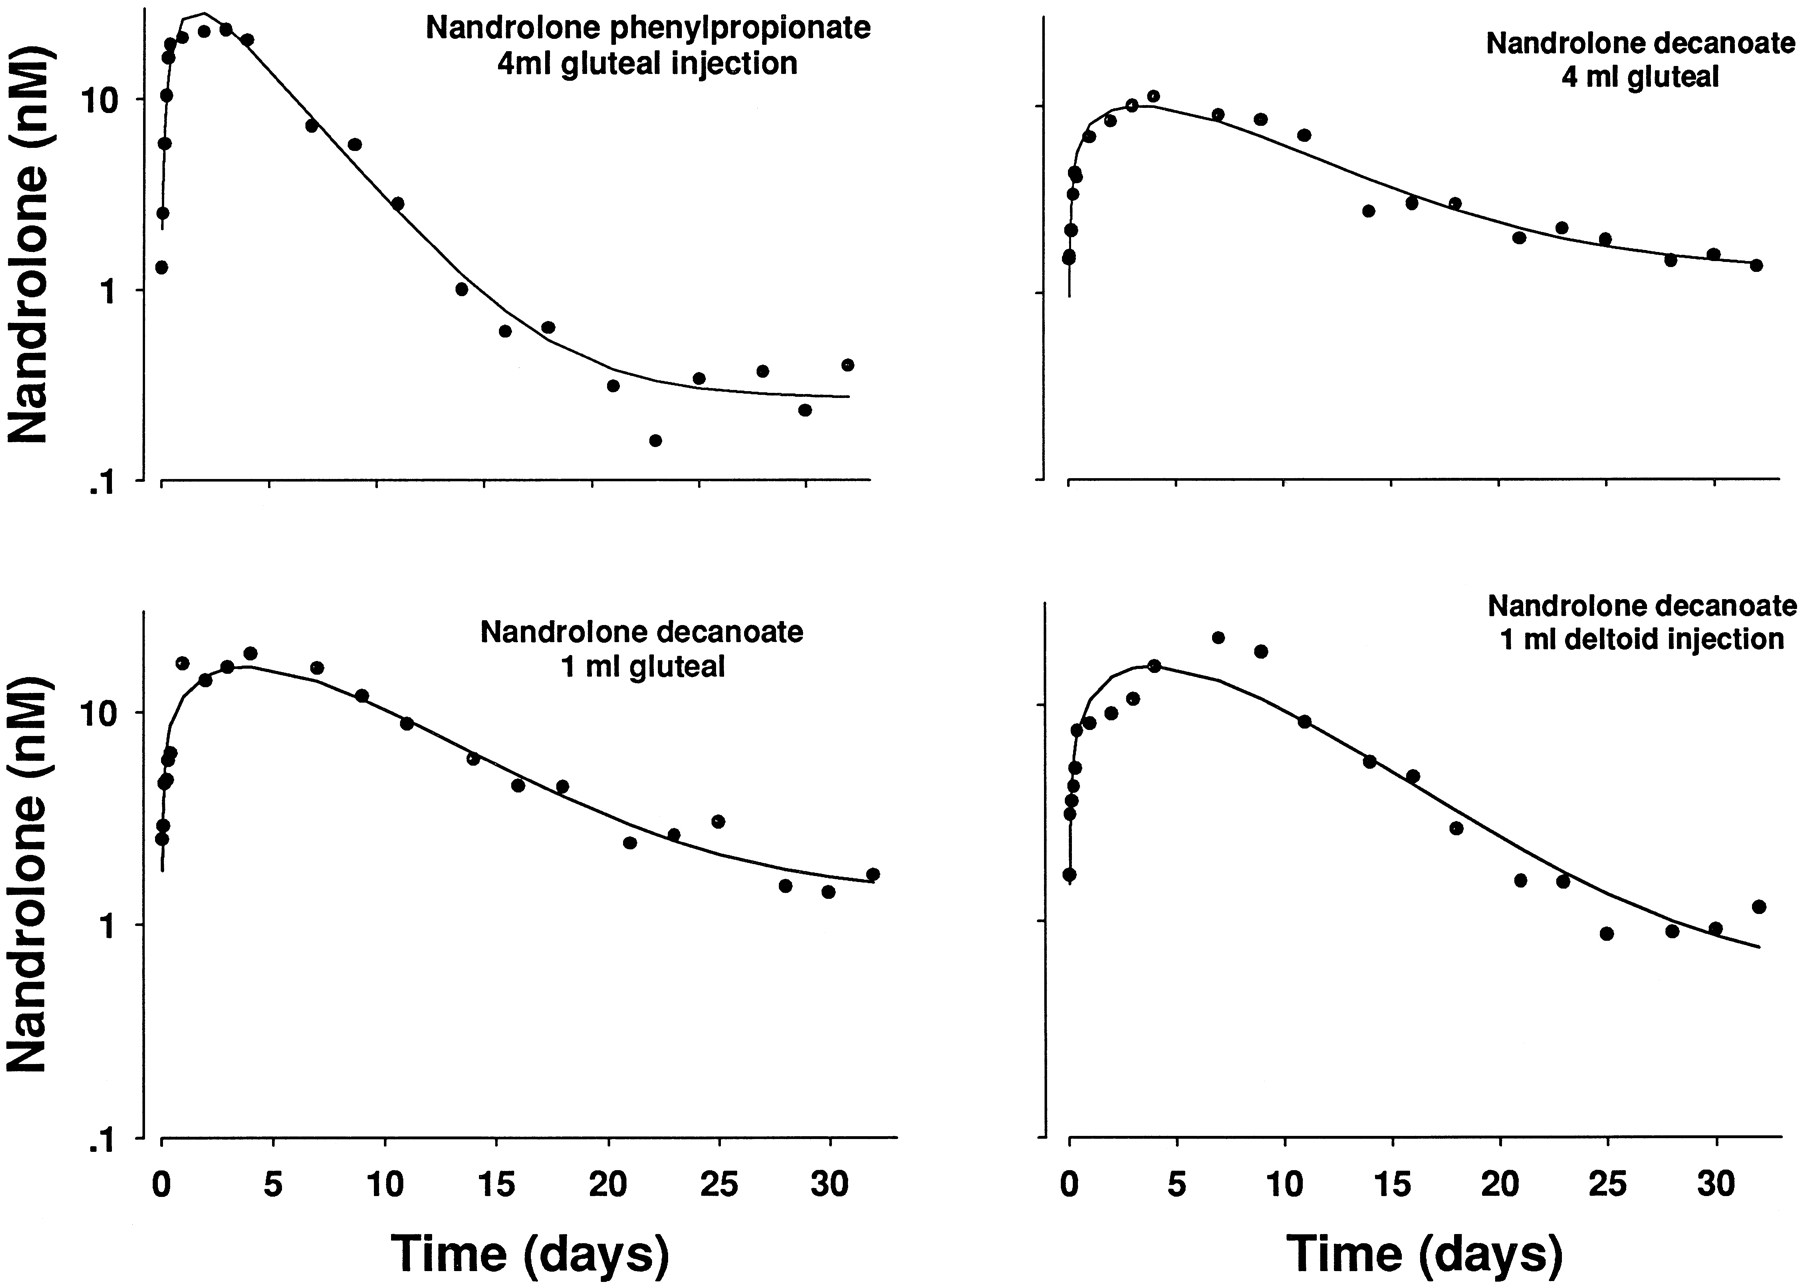 Pharmacokinetics And Pharmacodynamics Of Nandrolone Esters In Oil Vehicle Effects Of Ester